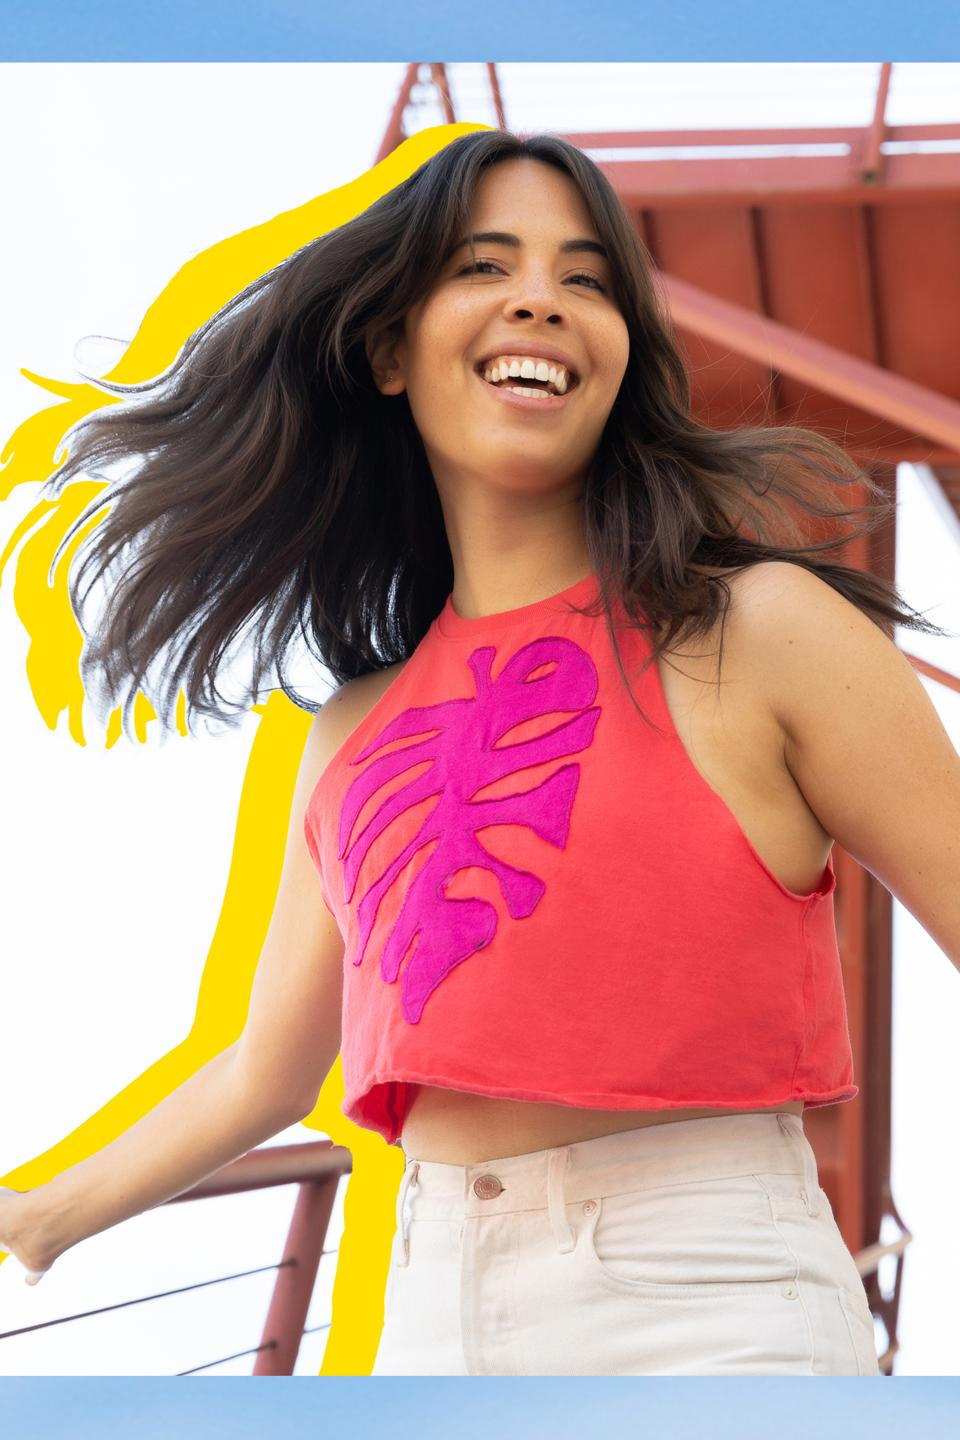 A model wears a red sleeveless crop top with fuchsia leaf from ThredUP x Zero Waste Daniel.